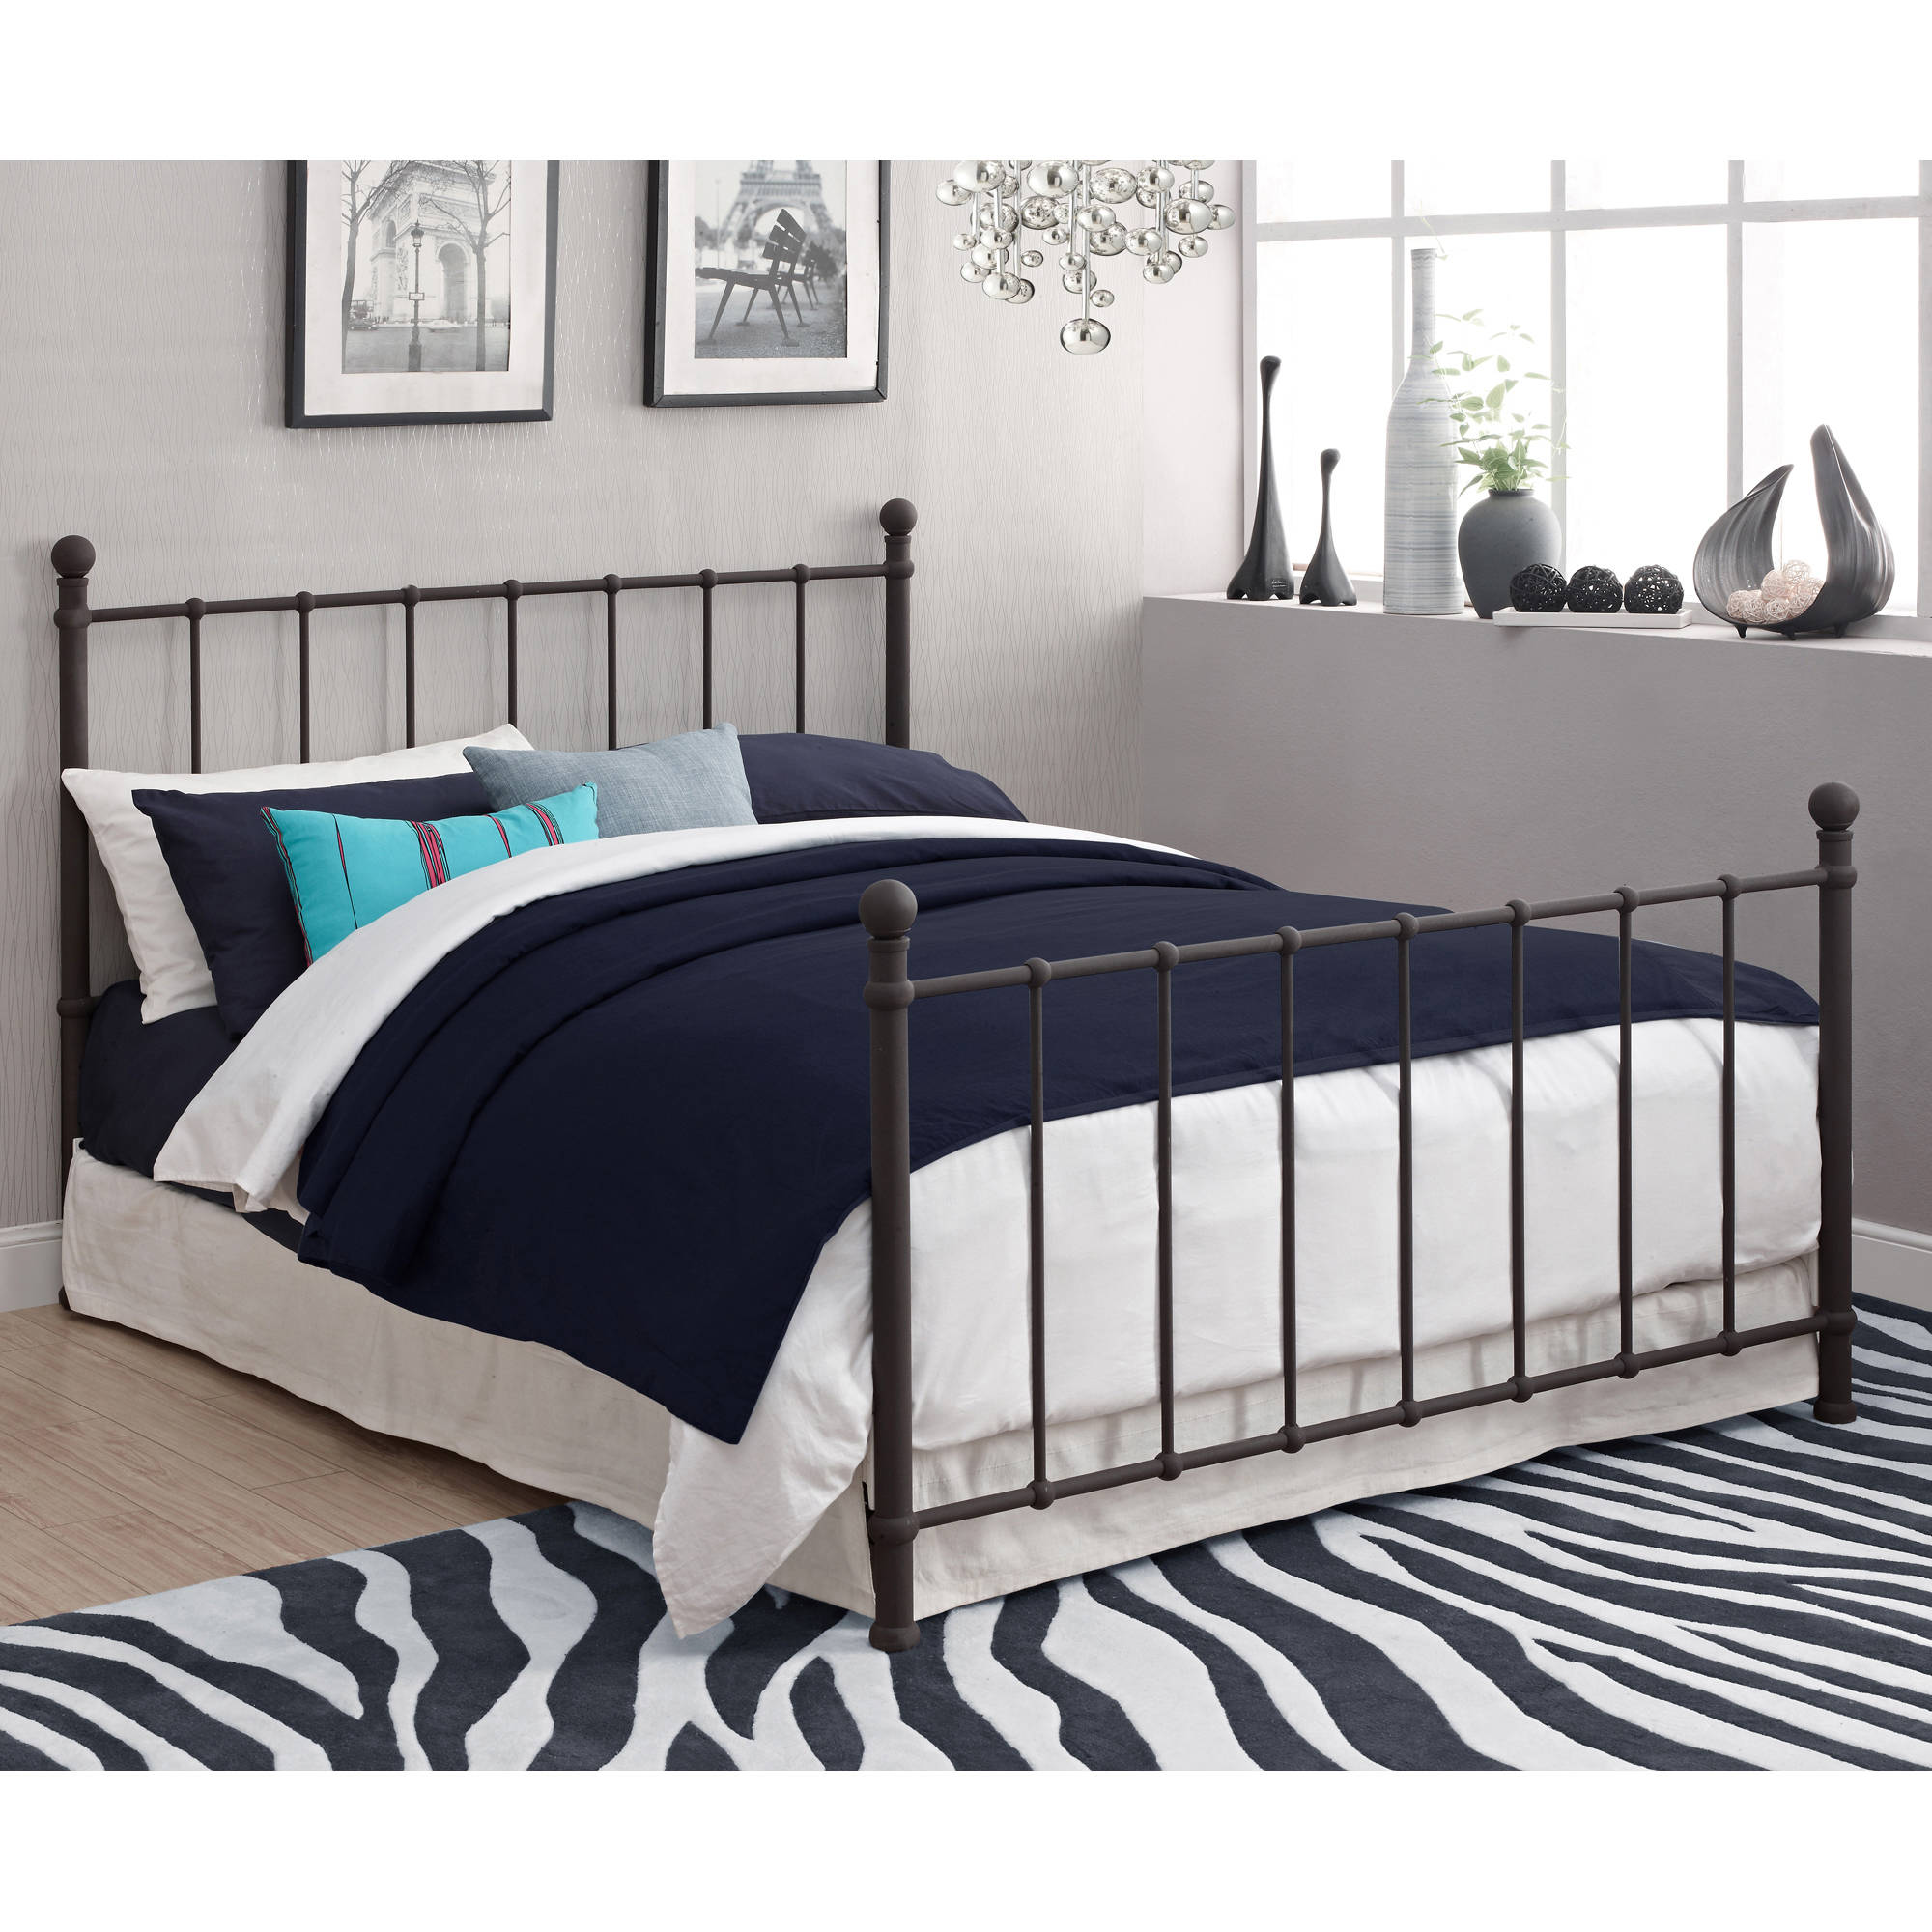 BrickMill Metal Full Bed, Multiple Colors